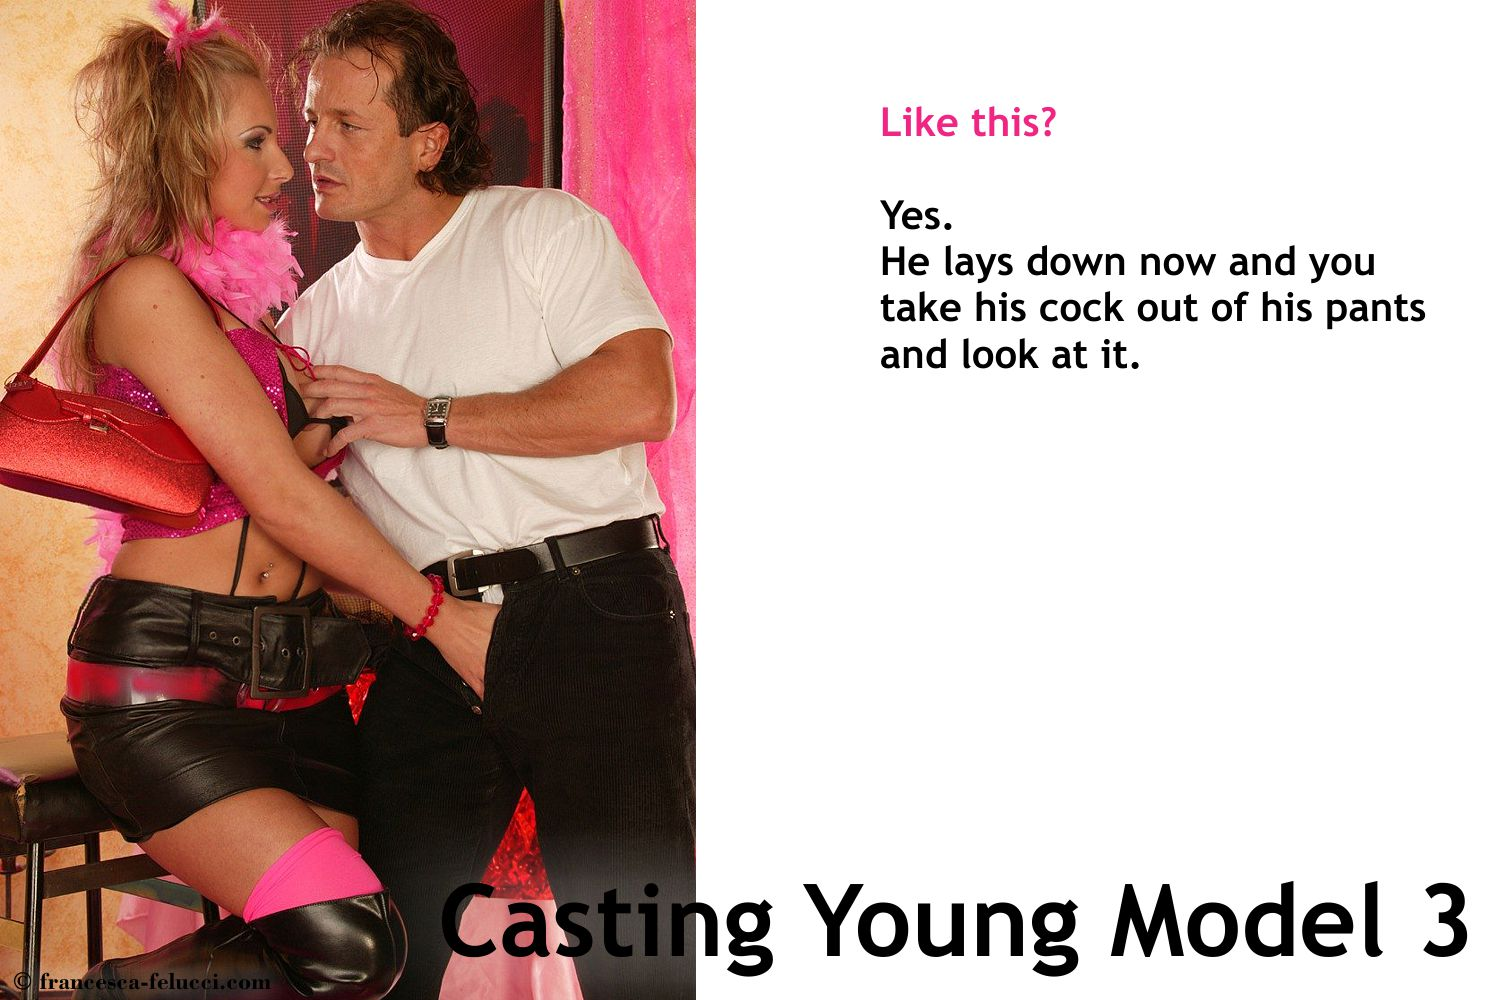 casting_young_model_3_005